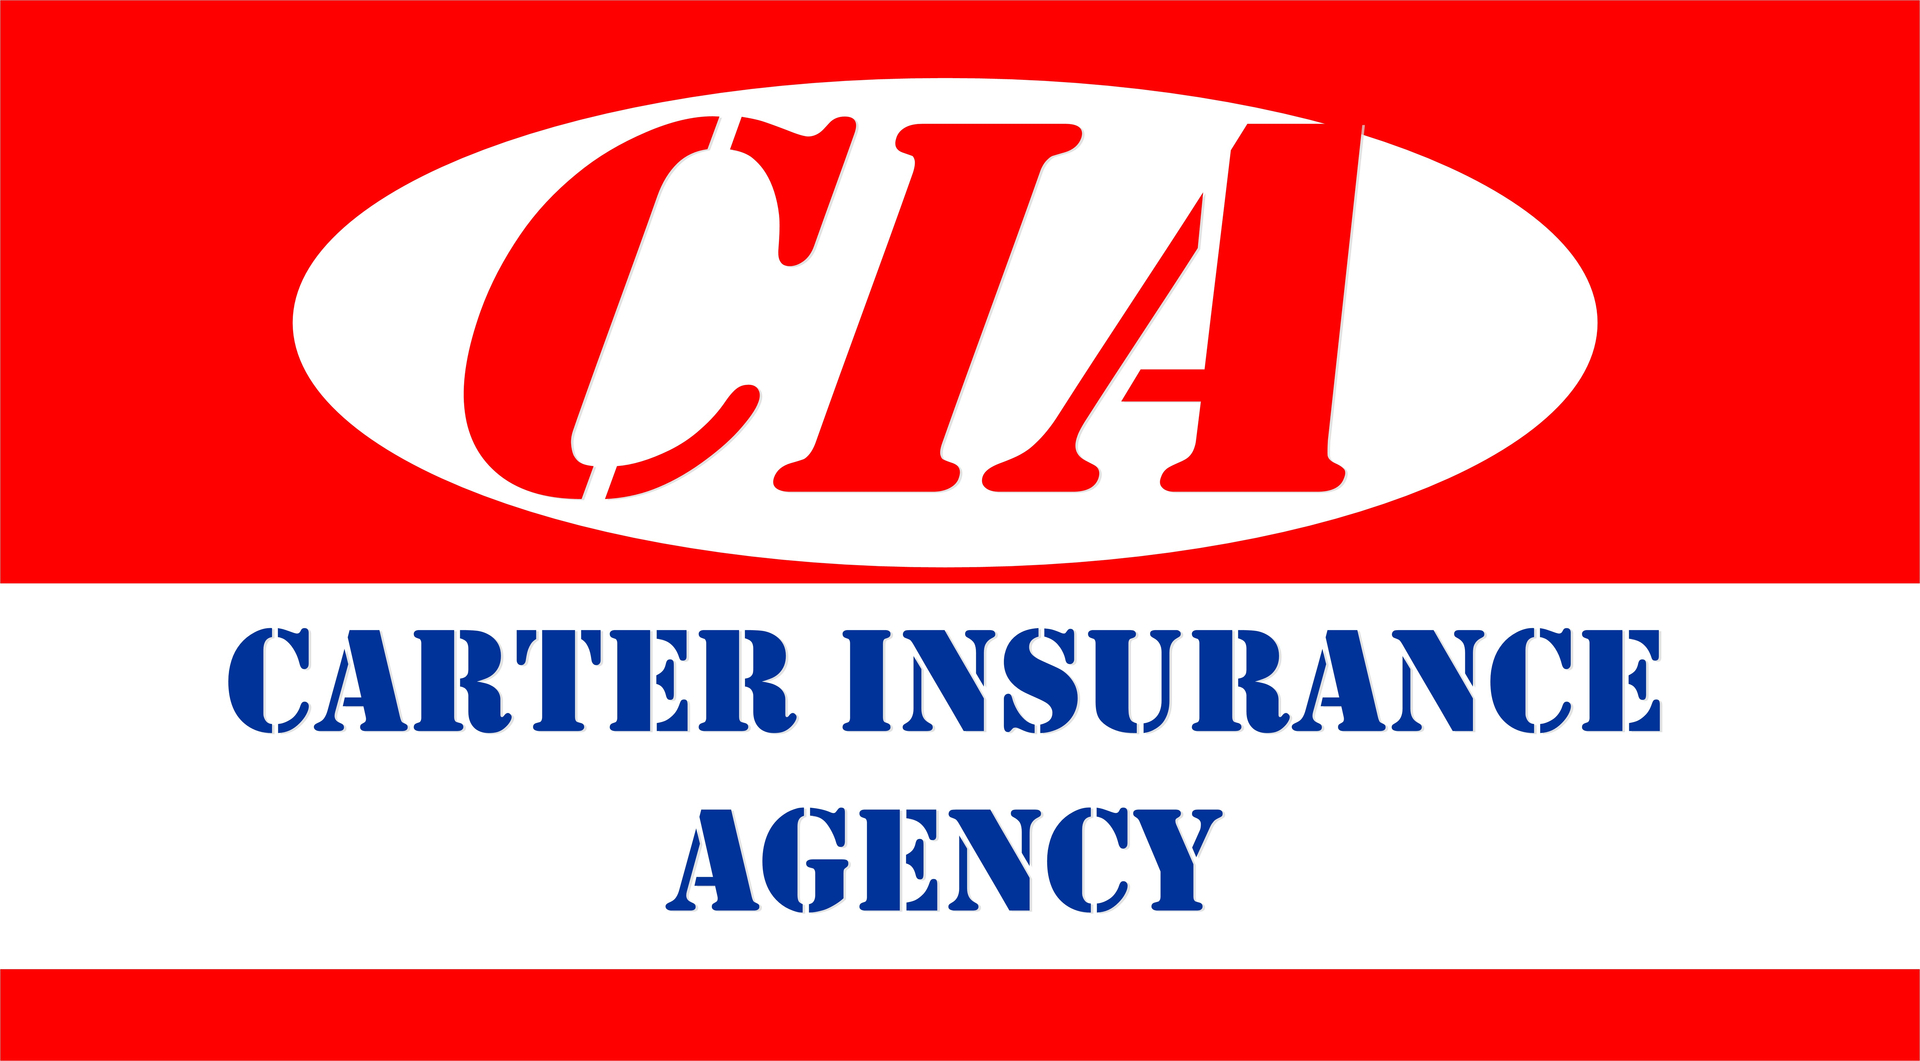 Auto Owners Insurance Quote Cia Carter Insurance Agency  Online